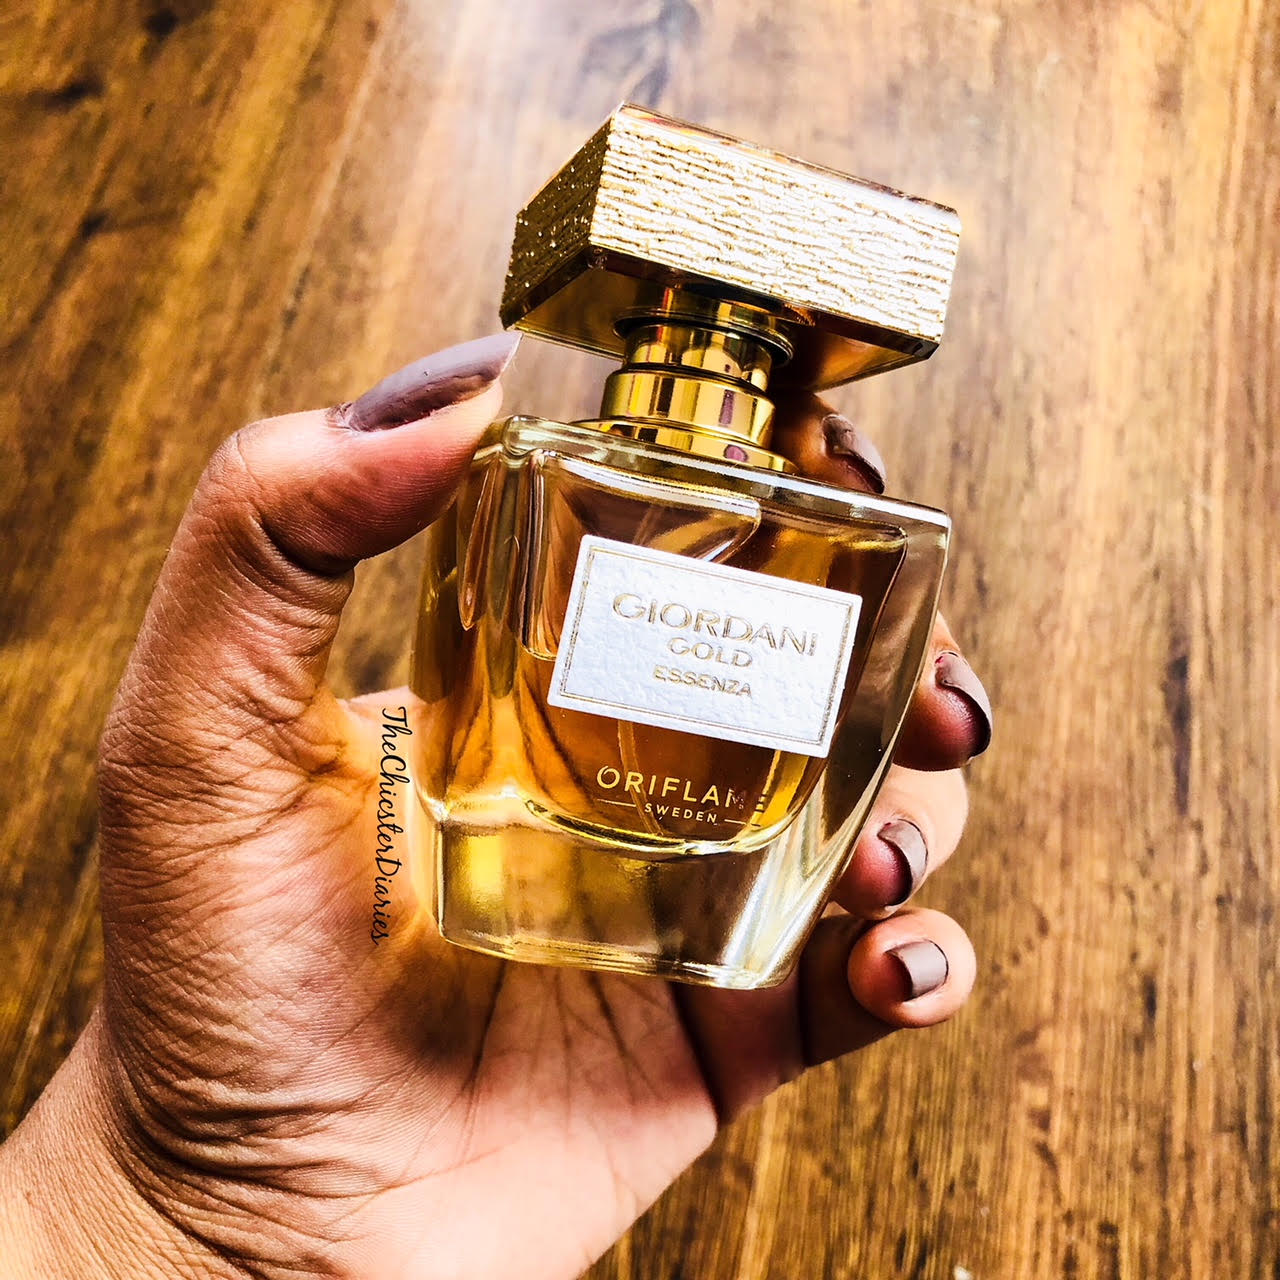 Giordani Fragrances By Oriflame The Perfect Christmas Gift Gold Body Cream Essenza Results Parfum Is Housed In A Luxurious Yet Chic Glass Bottle Where Cap Of Made Real Leaf